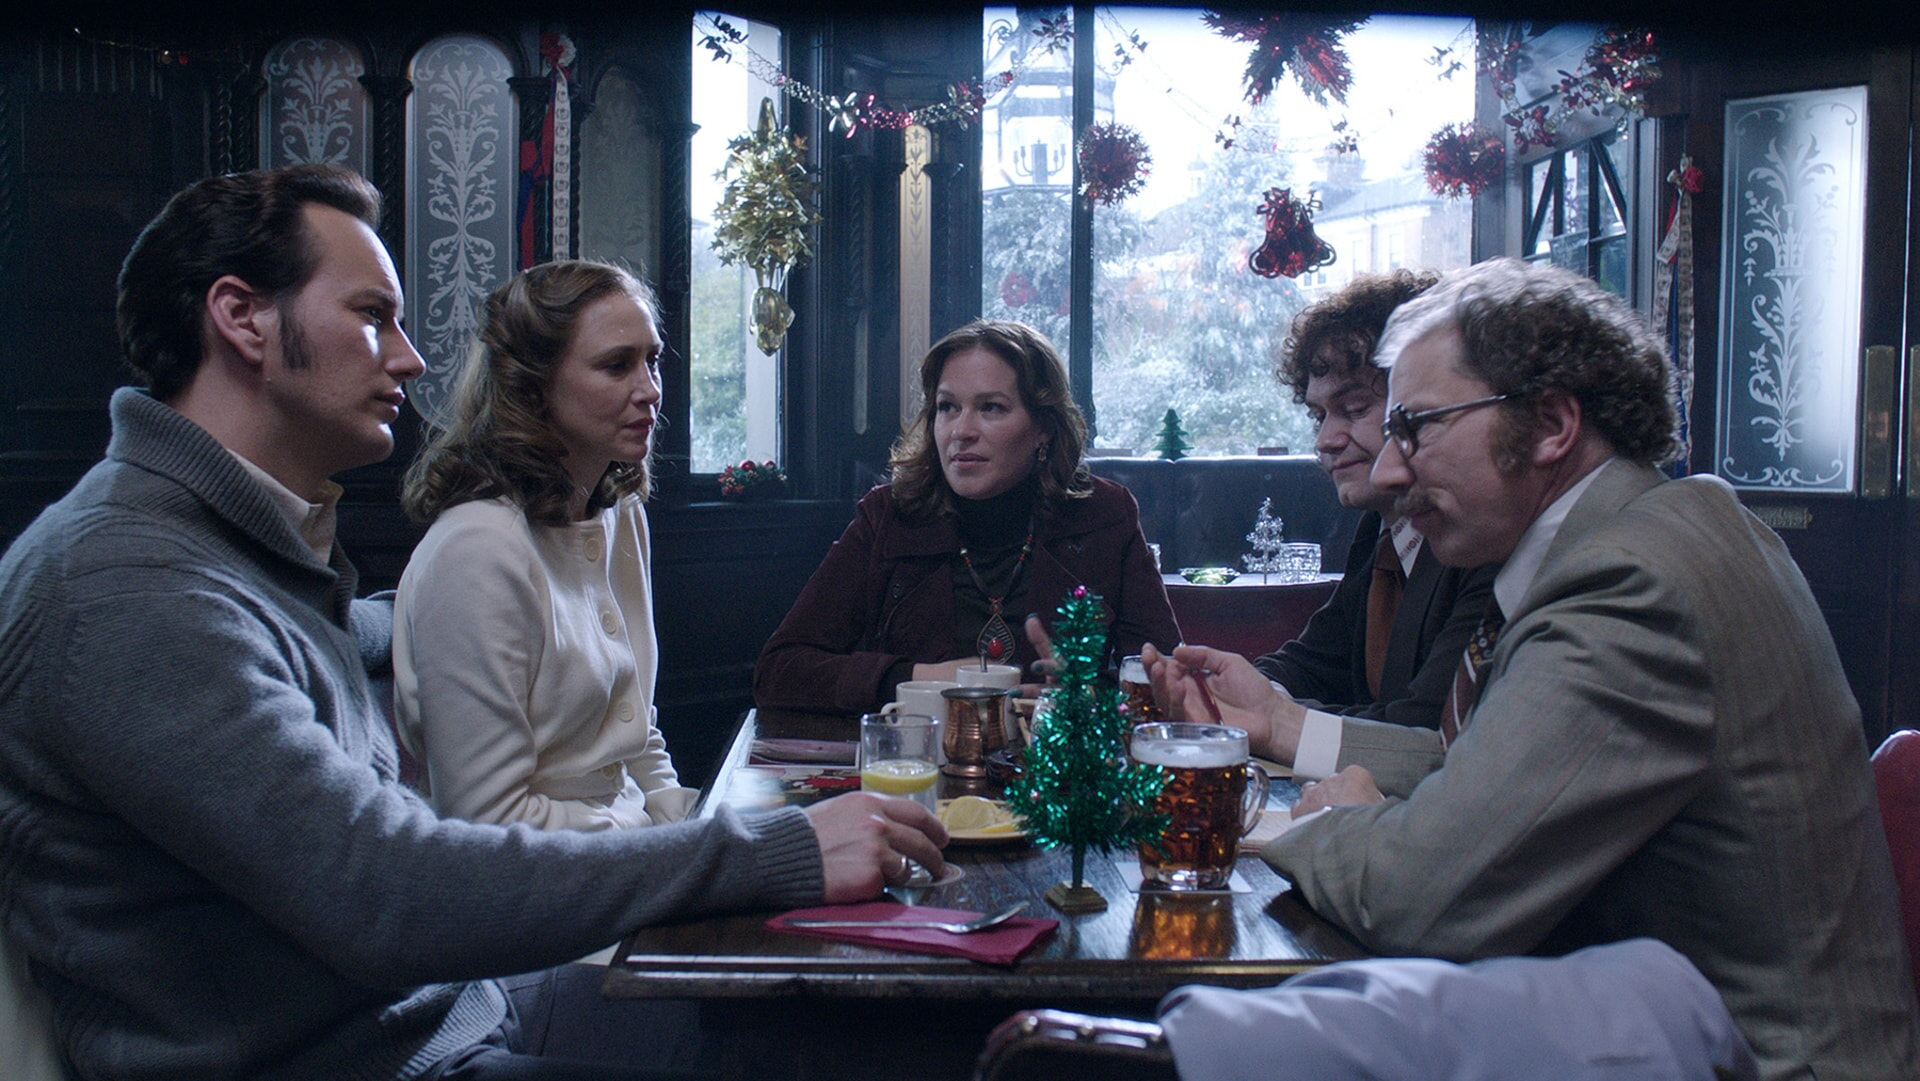 PATRICK WILSON as Ed Warren, VERA FARMIGA as Lorraine Warren, FRANKA POTENTE as Anita Gregory and SIMON McBURNEY as Maurice Grosse meeting in a restaurant decorated with Christmas ornaments